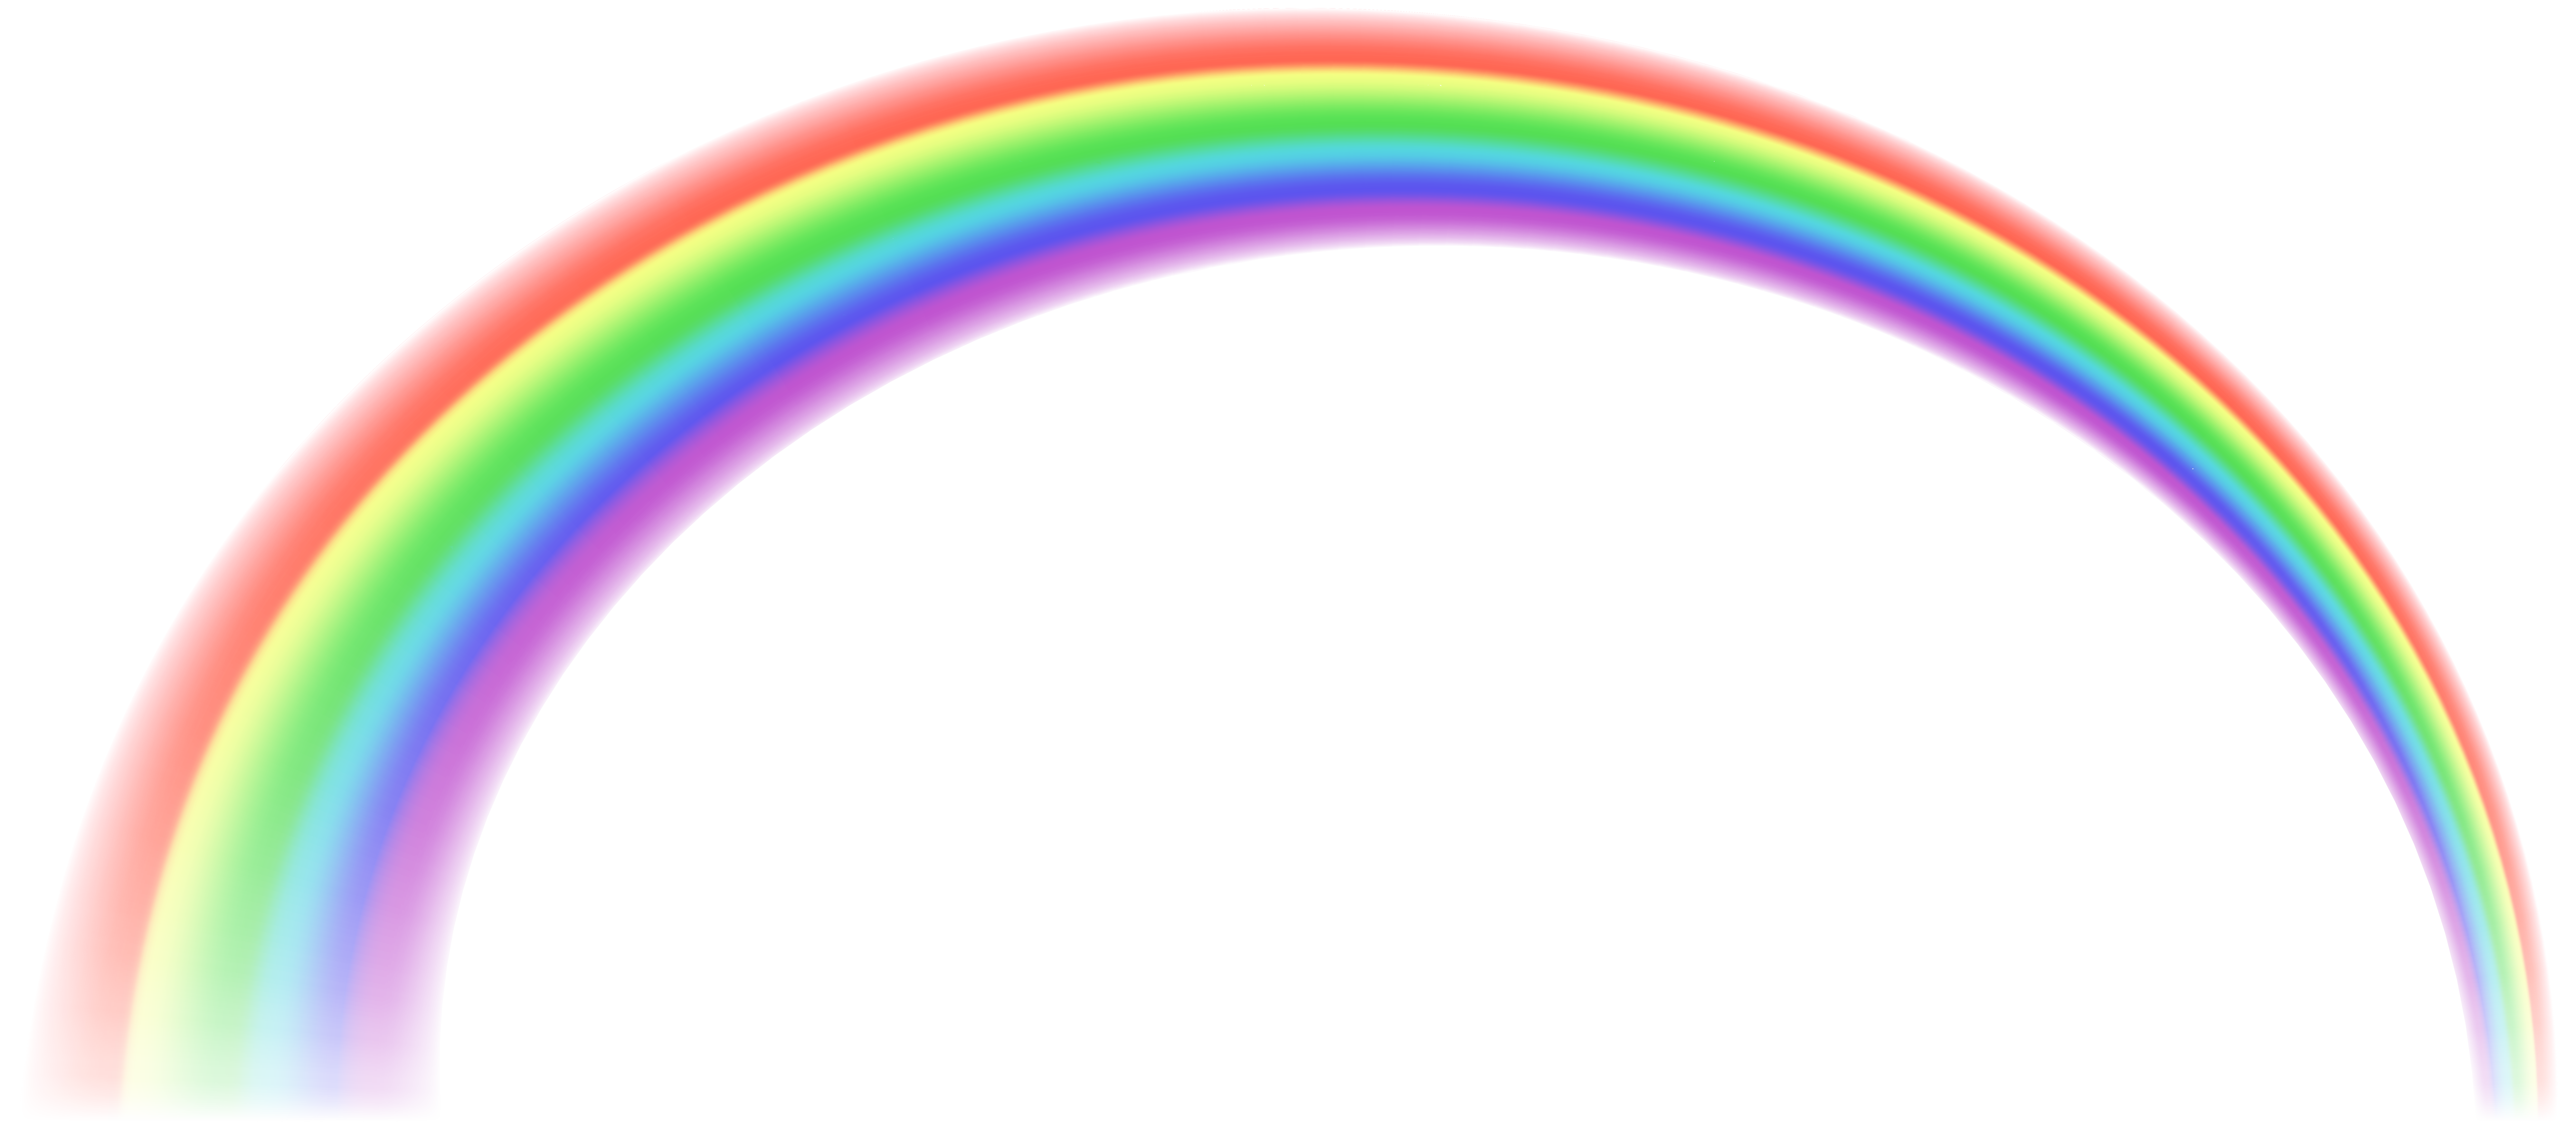 Rainbow Png Image - ClipArt Best